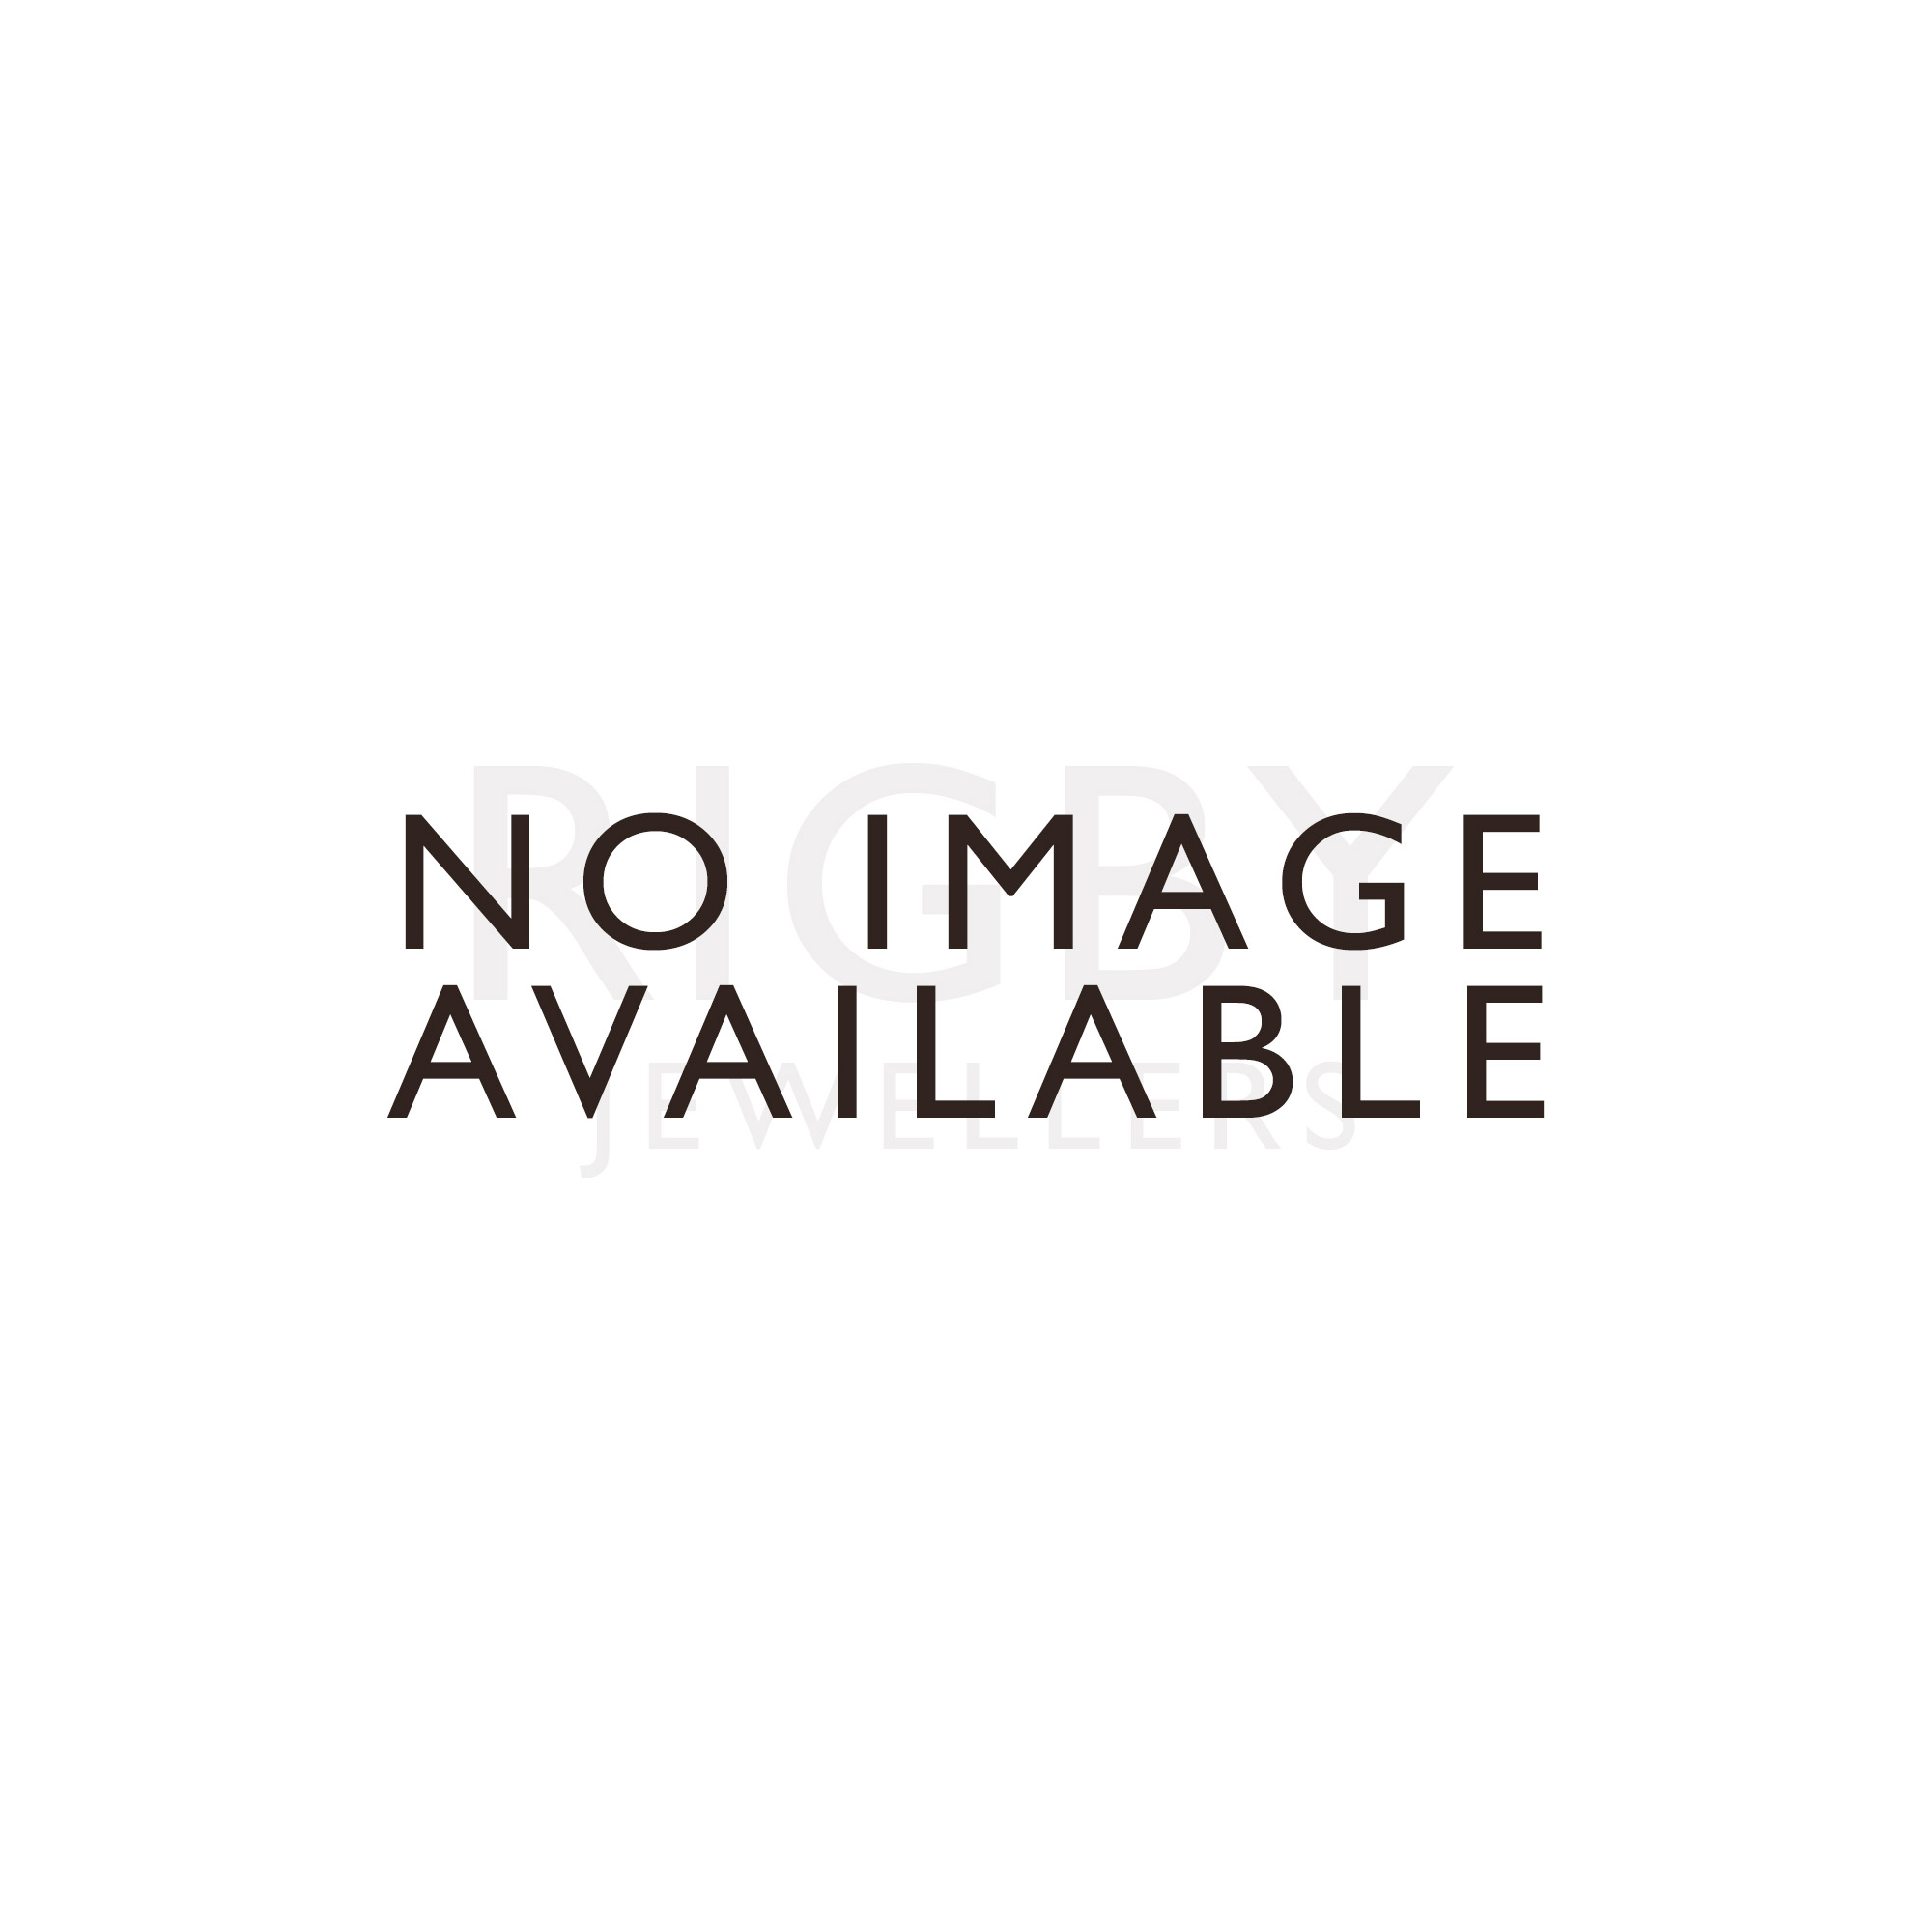 Seiko Dark Wooden Westminster Chime Battery Wall Clock Qxh039b